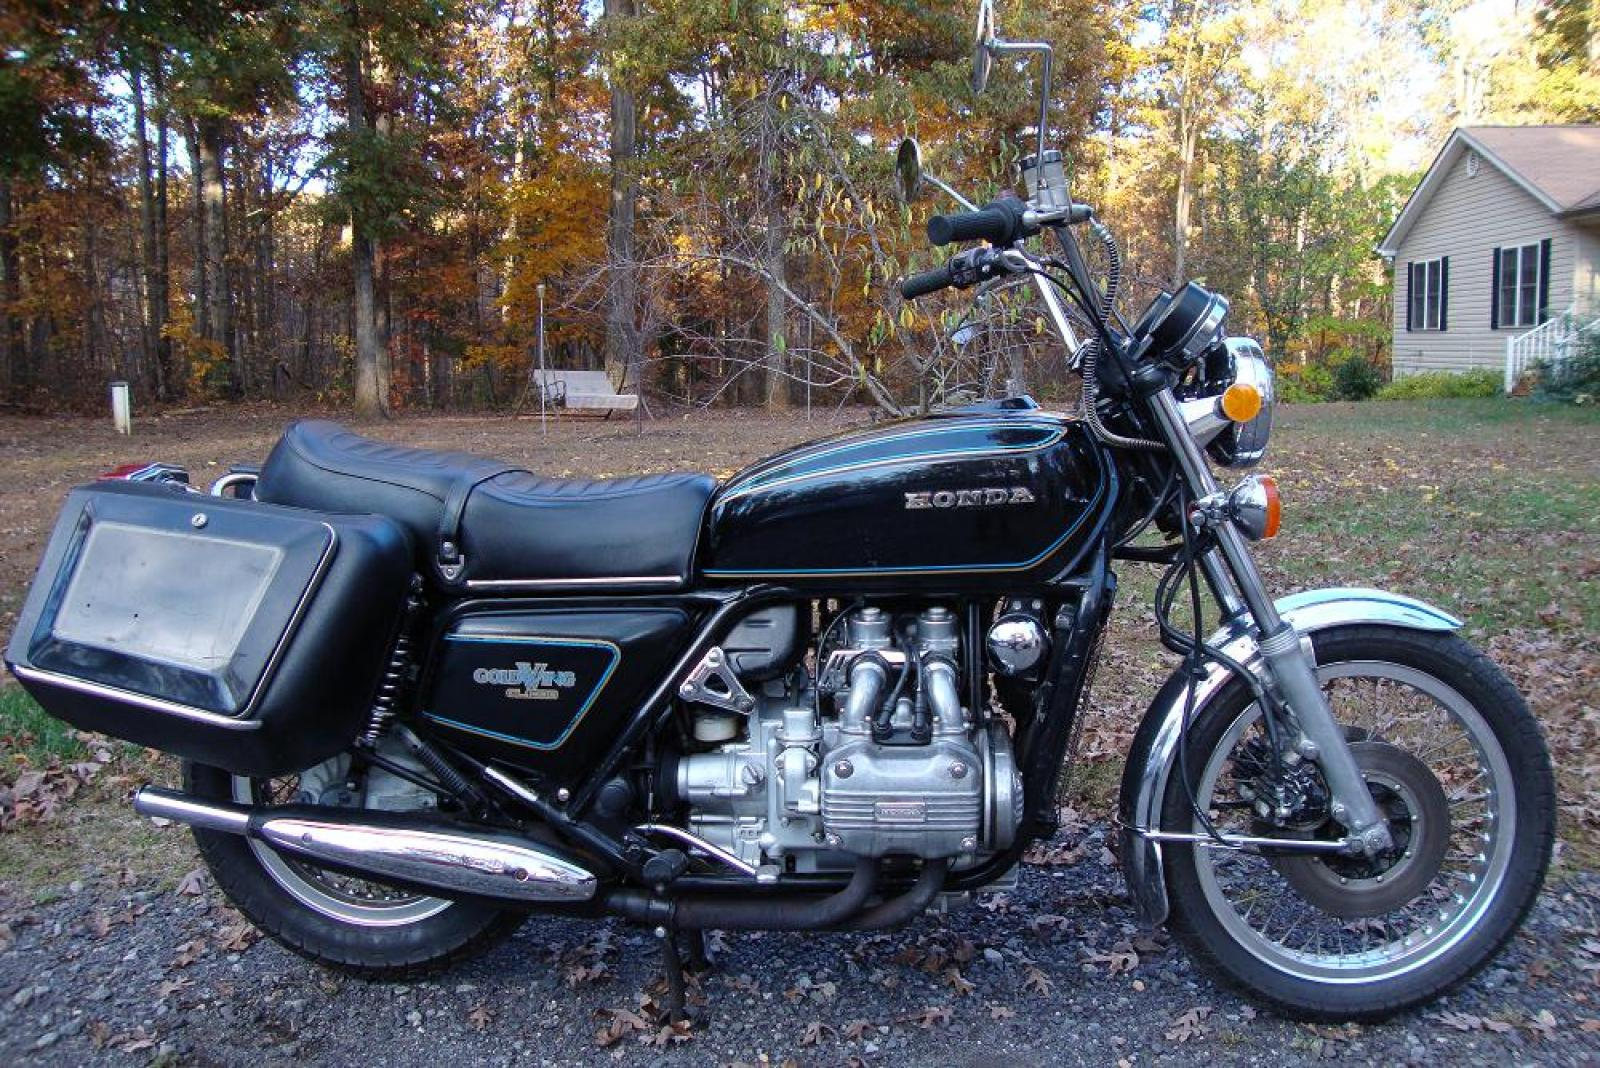 1987 Honda Goldwing Gl1000 Wiring Diagram Explore Schematic Wiring Wiring A  1981 Honda GL1100 1978 Honda Goldwing Gl1000 Wiring Diagram